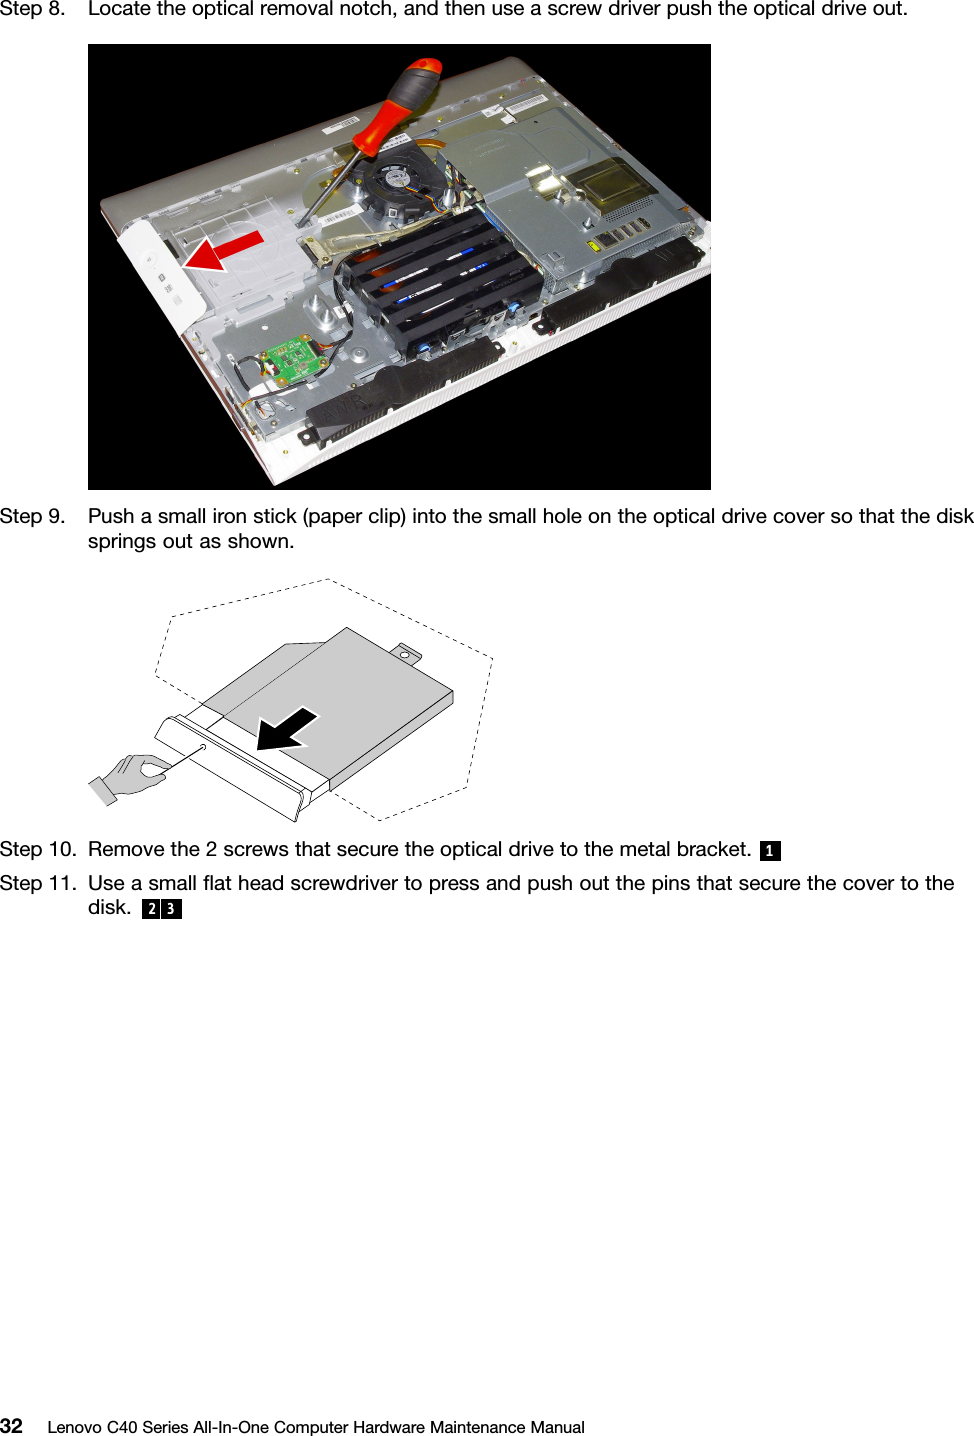 Lenovo C40 Hmm 20141110 User Manual Series All In One